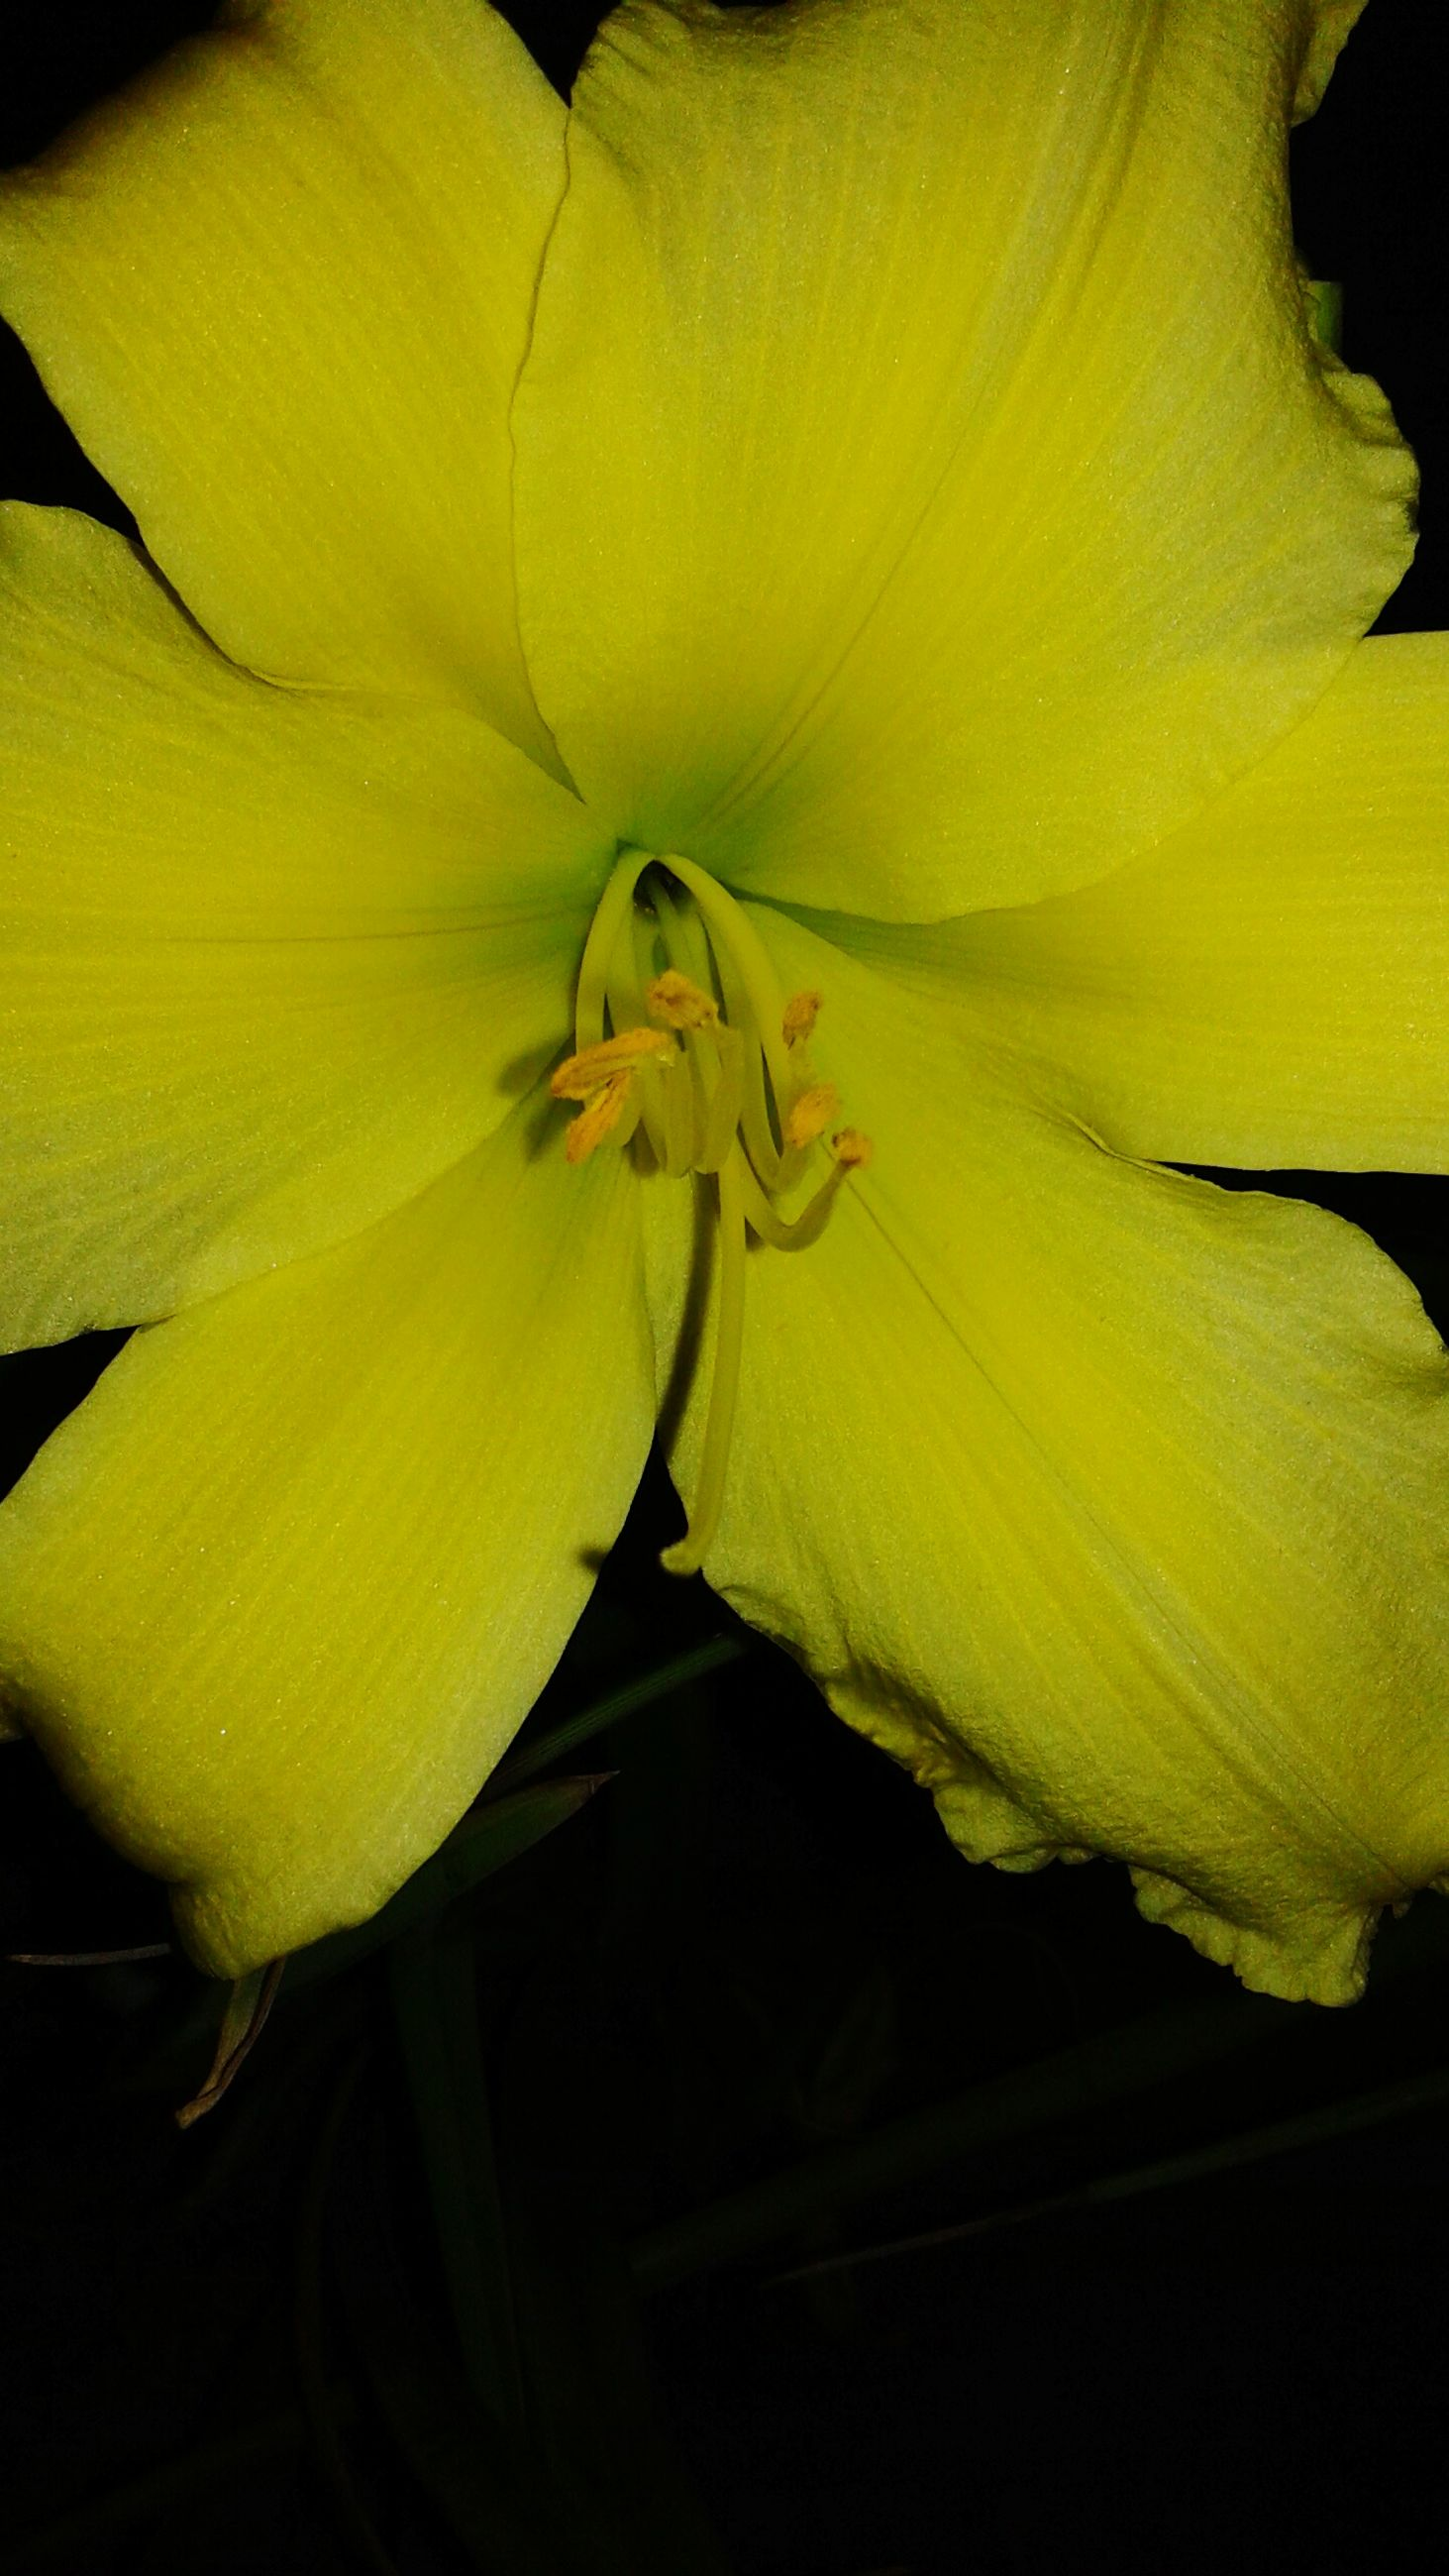 flower, petal, flower head, fragility, yellow, freshness, beauty in nature, nature, growth, pollen, close-up, no people, backgrounds, stamen, full frame, day lily, outdoors, day, plant, blooming, black background